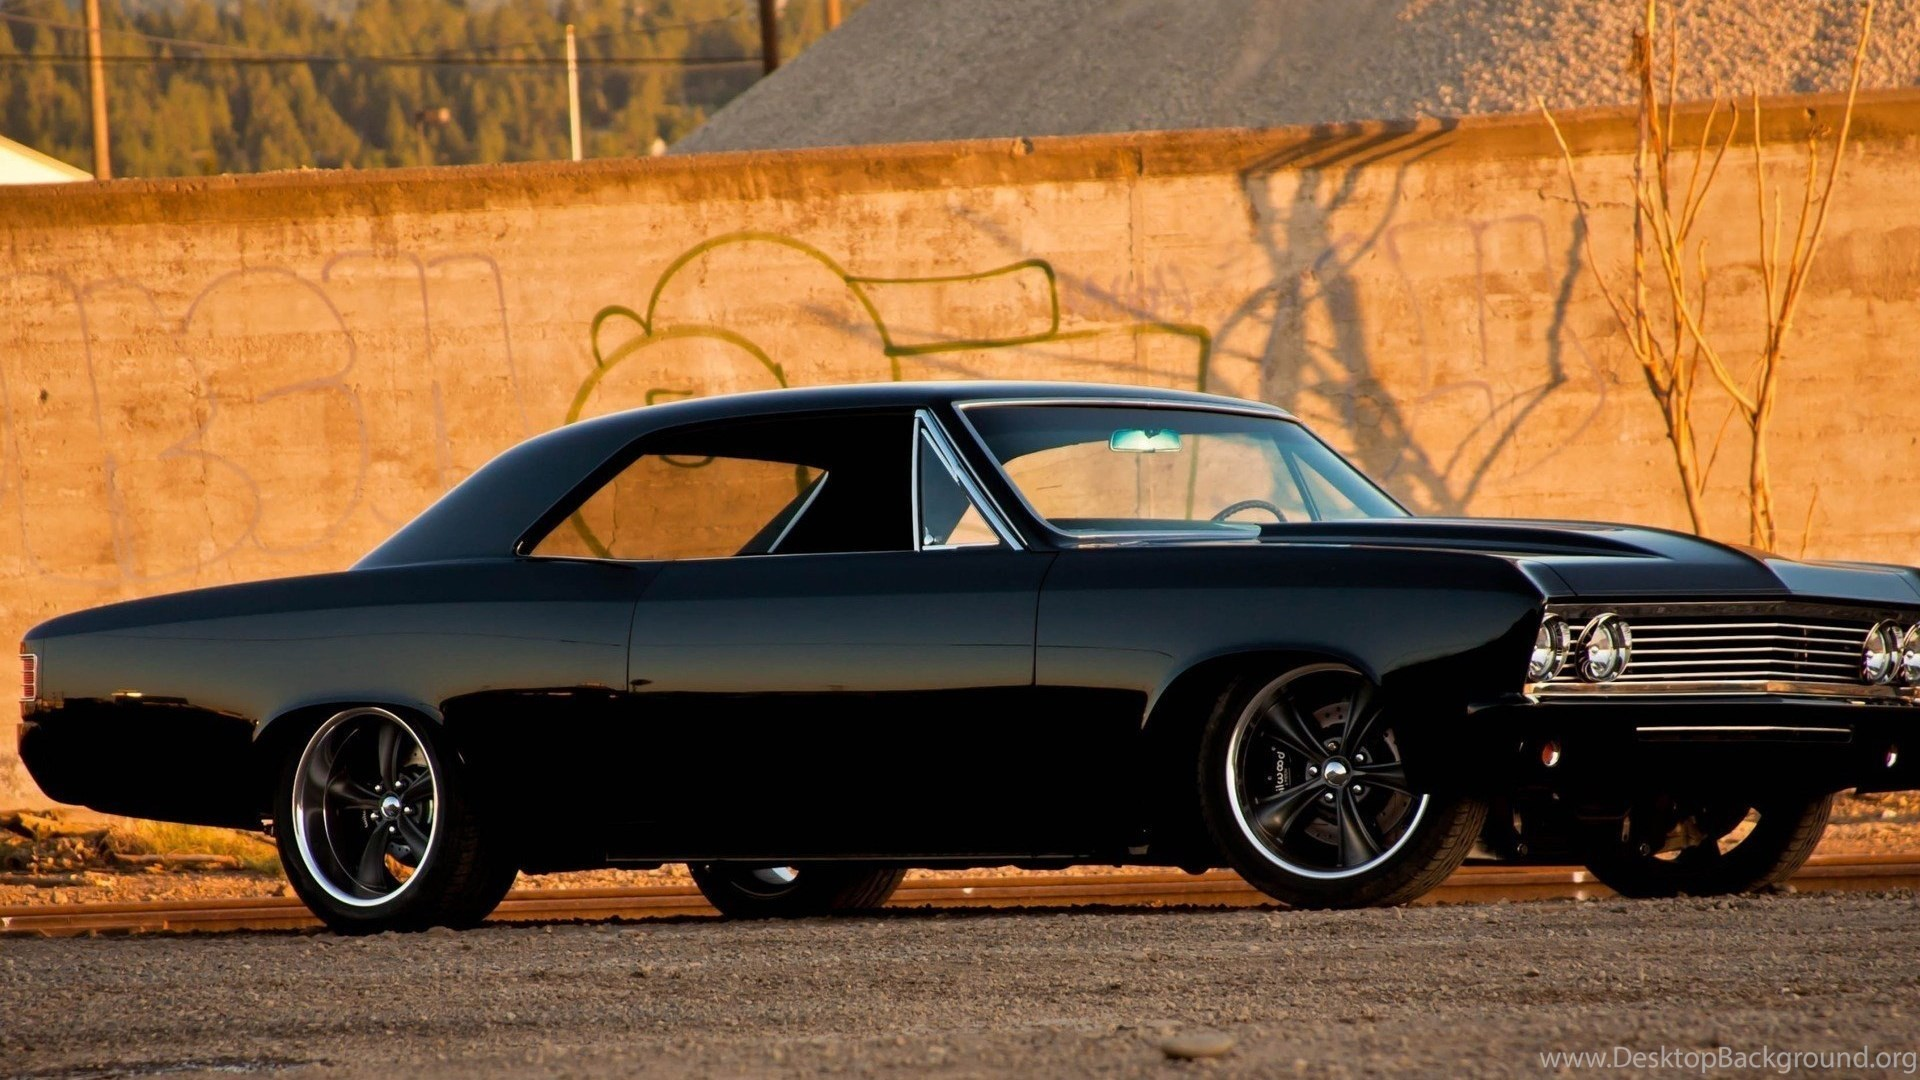 Chevelle Ss Wallpapers Hd Wallpaper Collections